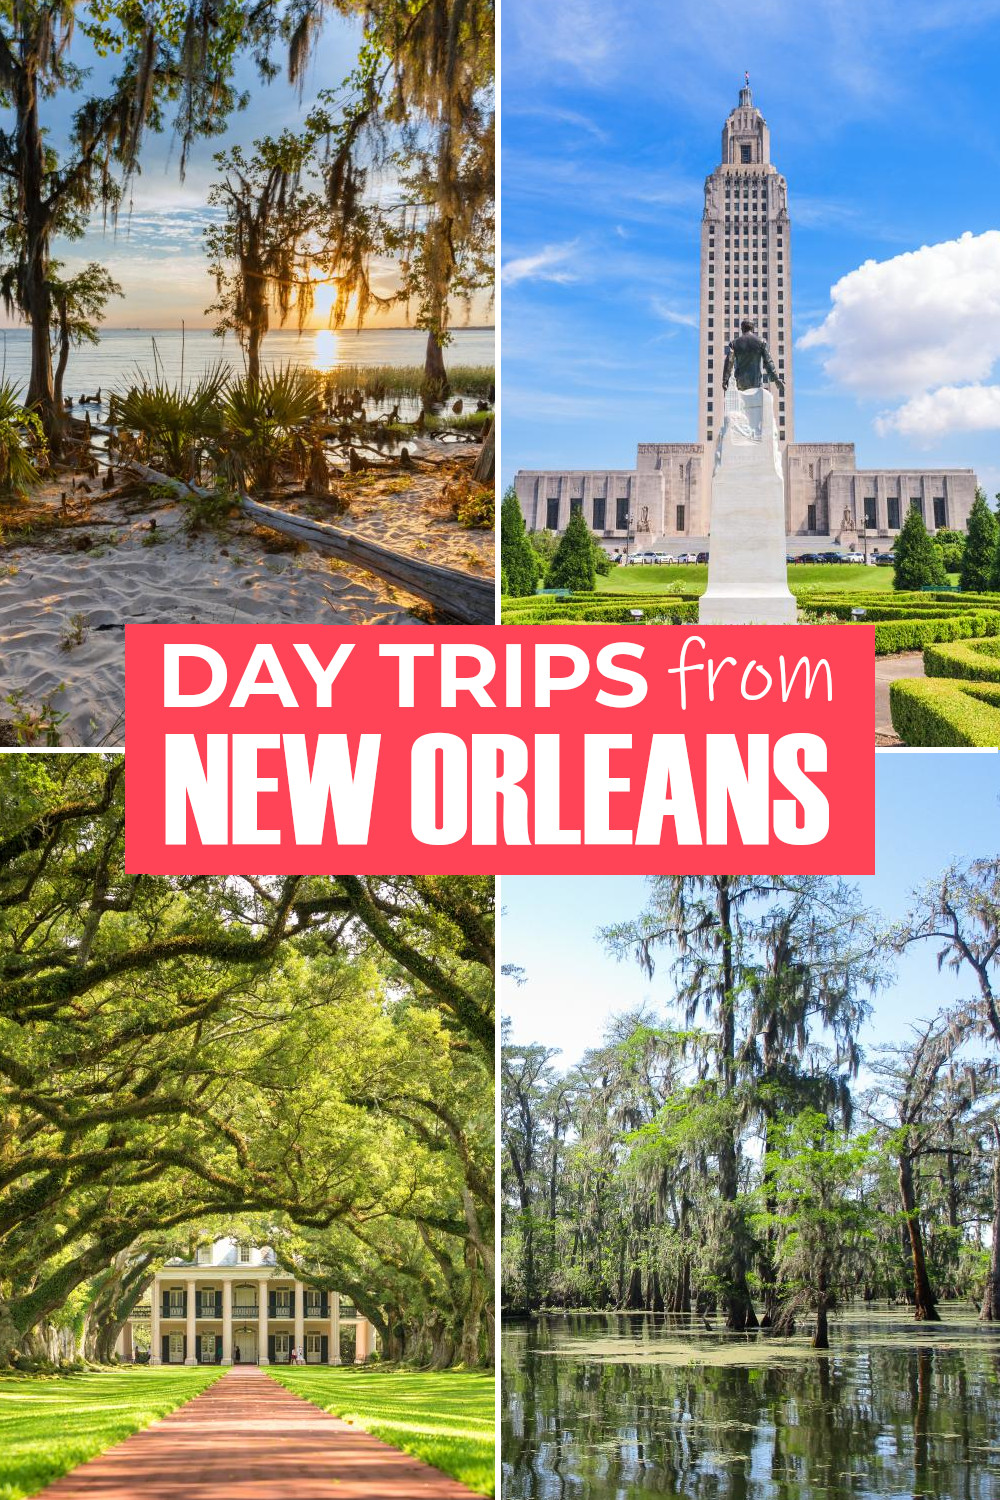 Our list of the 25 best day trips from New Orleans including swamps, bayous, historic cities, drives along the Mississippi and even the Tabasco Sauce factory.